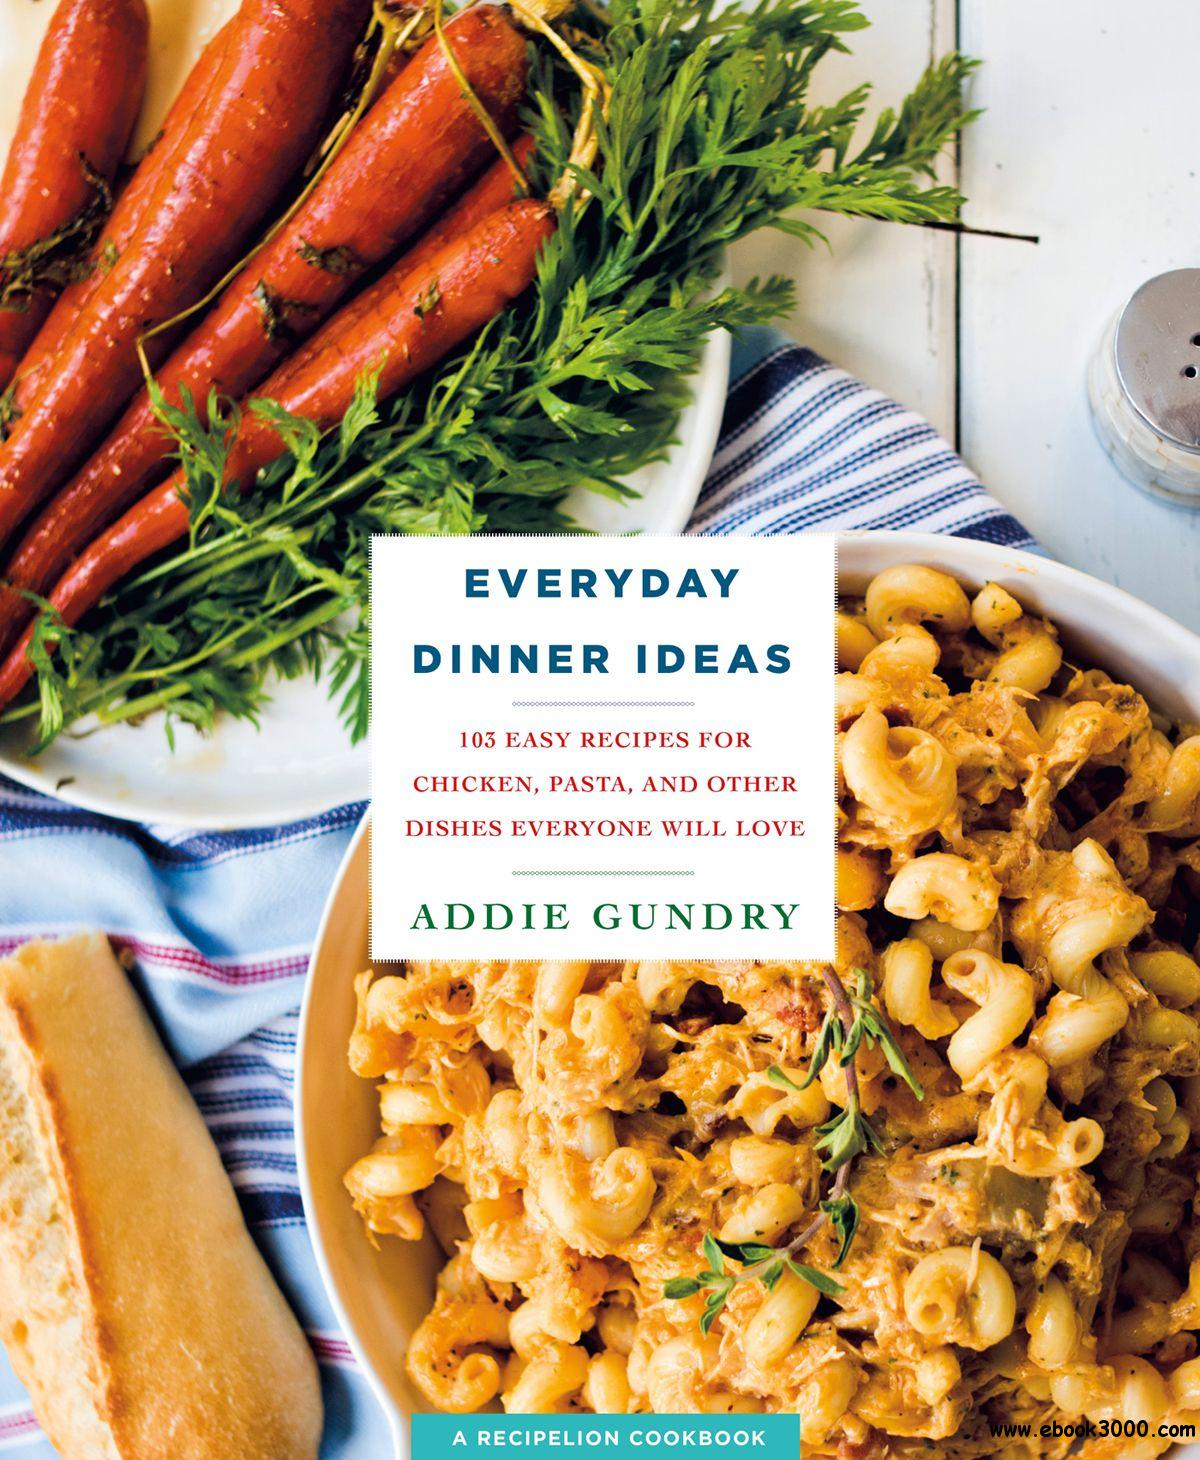 Everyday Dinner Ideas: 103 Easy Recipes with Chicken, Pasta, and More